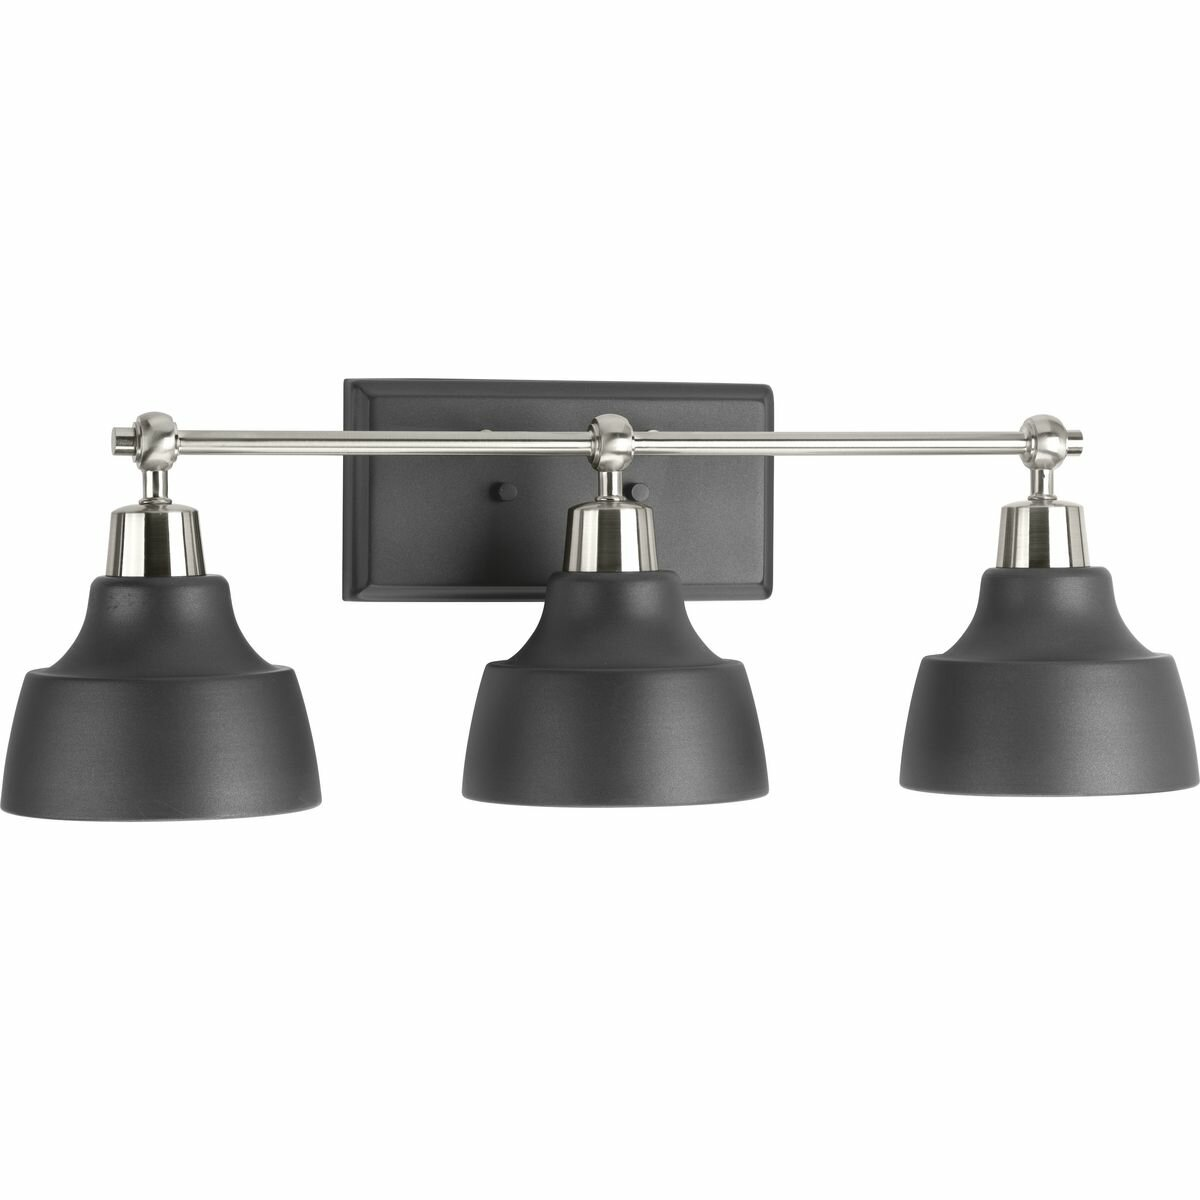 Ivy Bronx Mable 3 Light Dimmable Brushed Nickel Vanity Light Reviews Wayfair